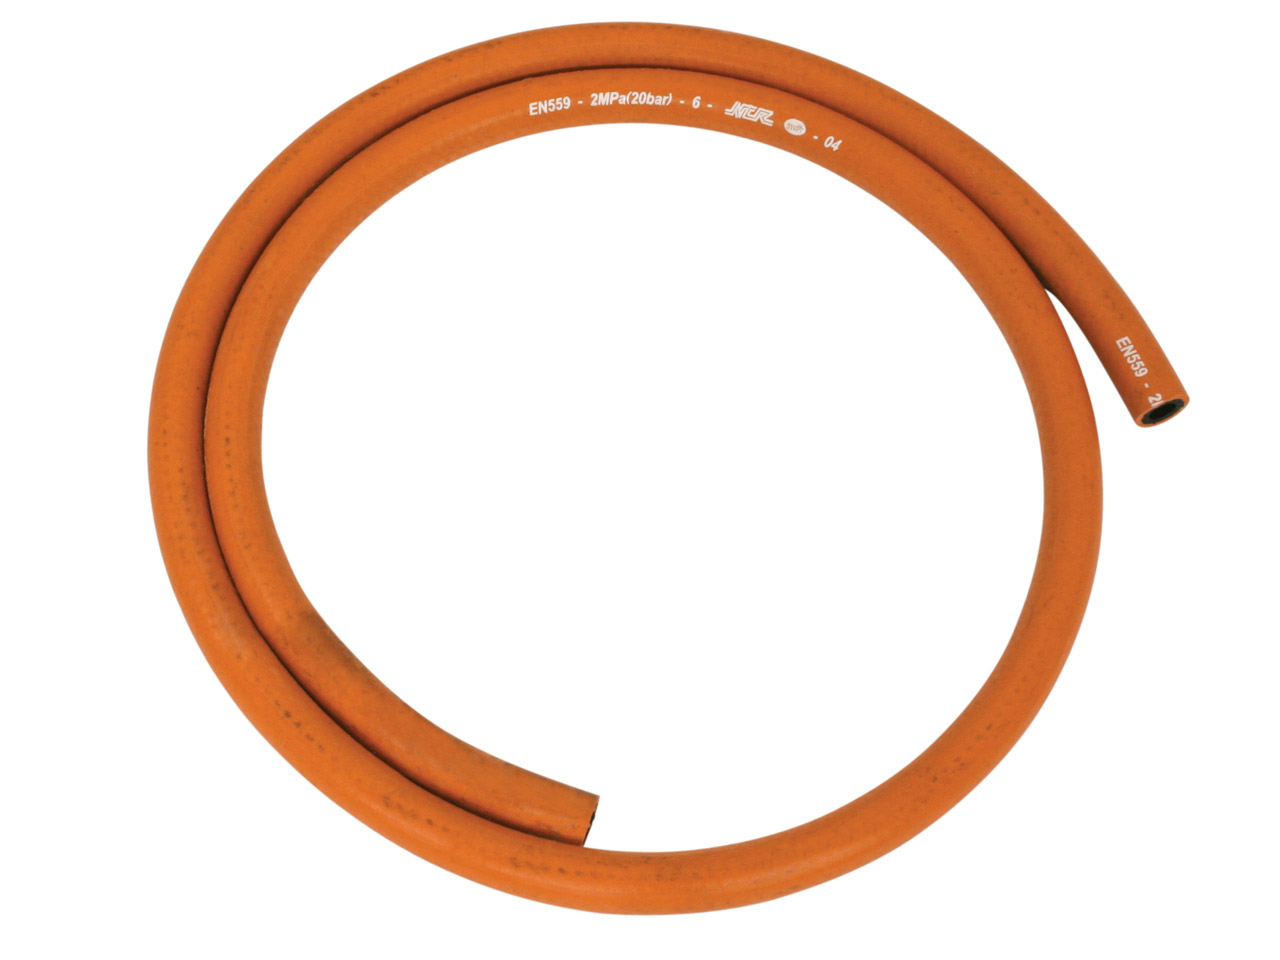 Oxy/gas Hose For Gas Per Metre, No Fittings Included